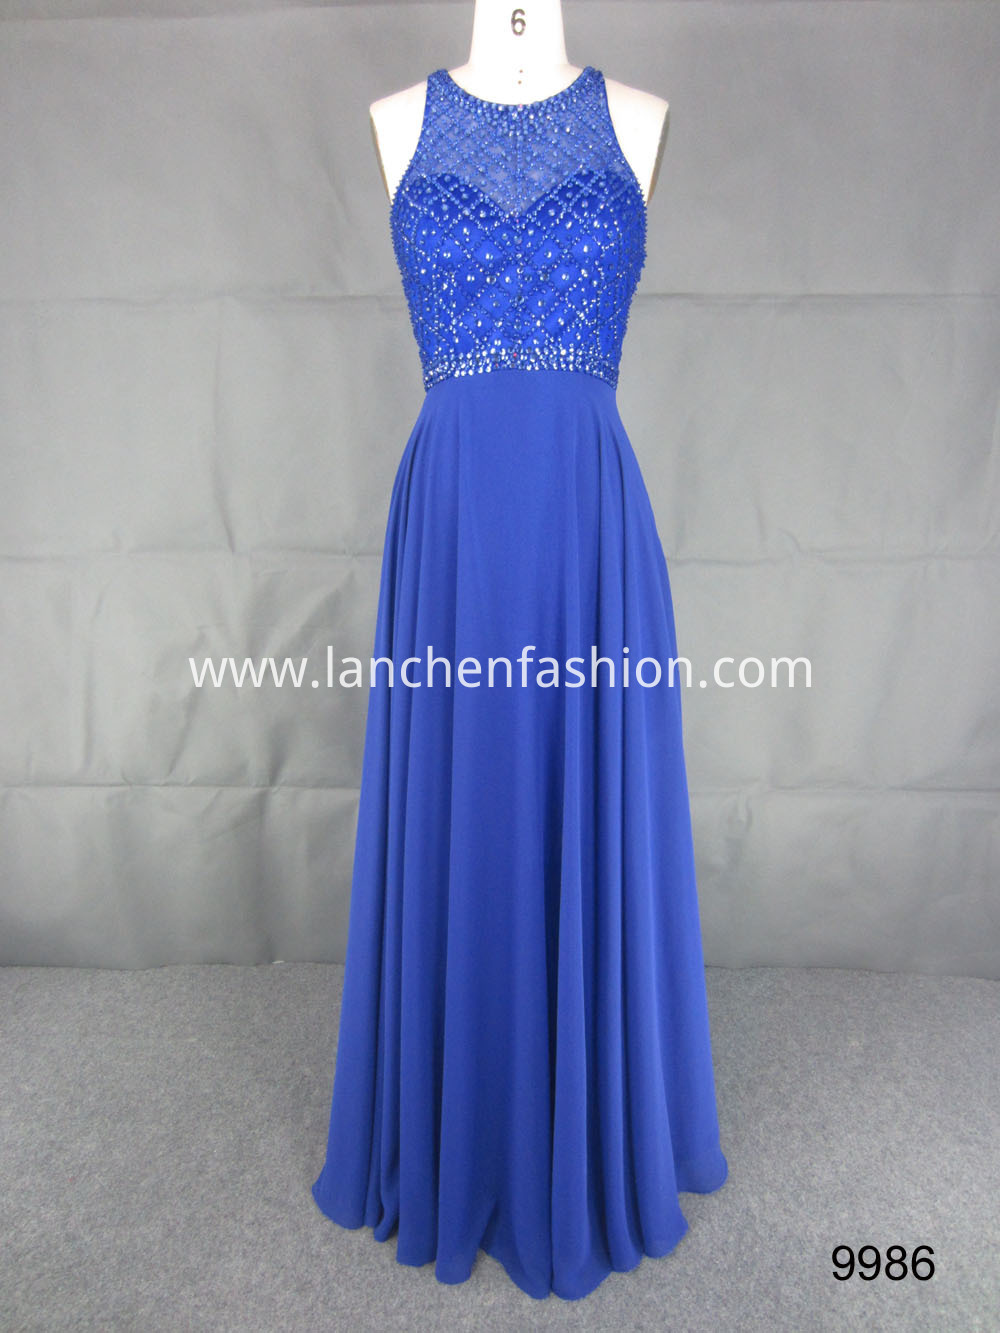 Long Formal Evening Gowns